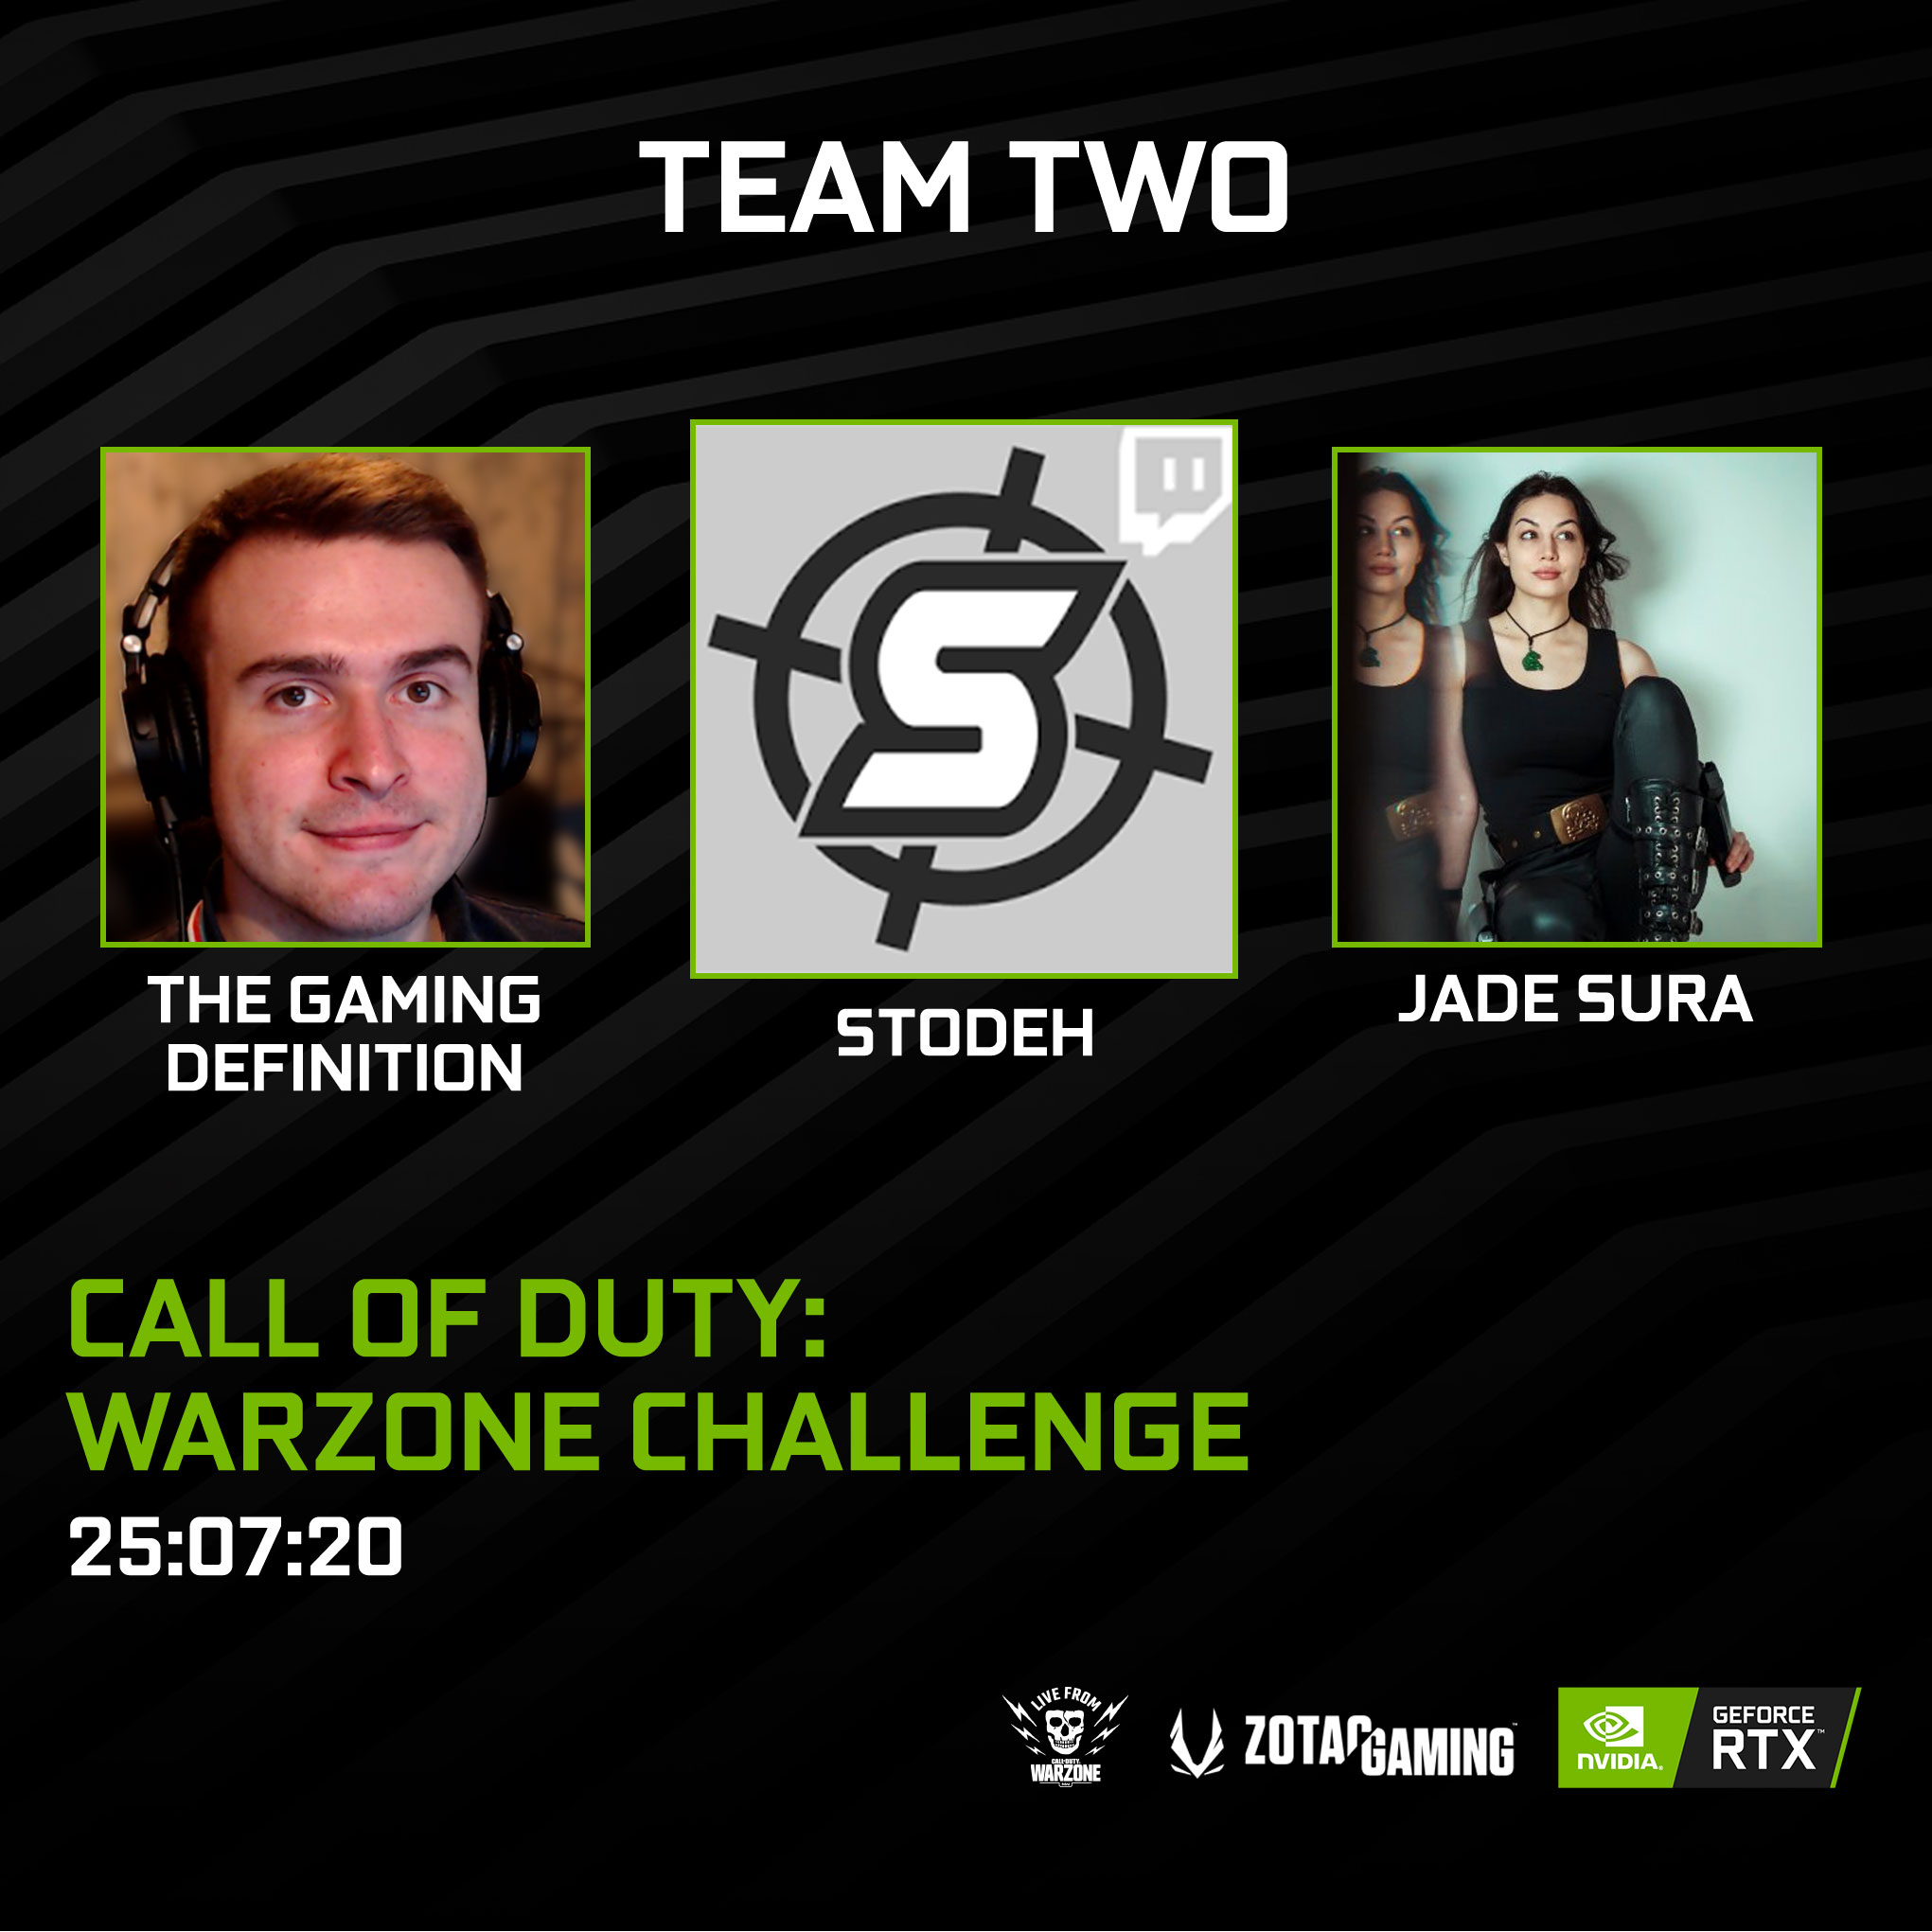 Jade Sura - Nvidia Call of Duty Warzone